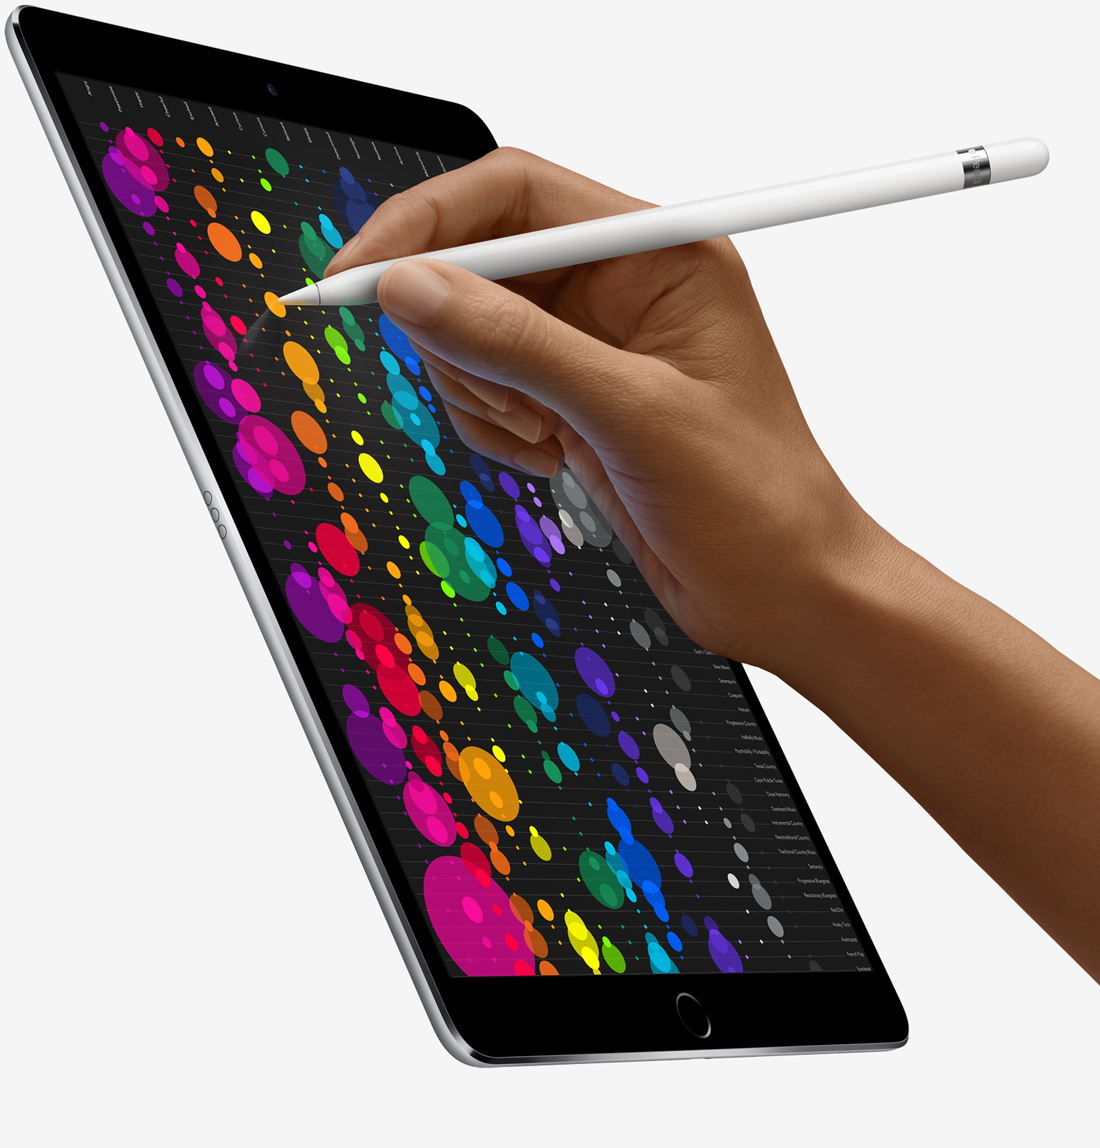 apple refreshes 12 9 inch ipad pro unveils new 10 5 inch size